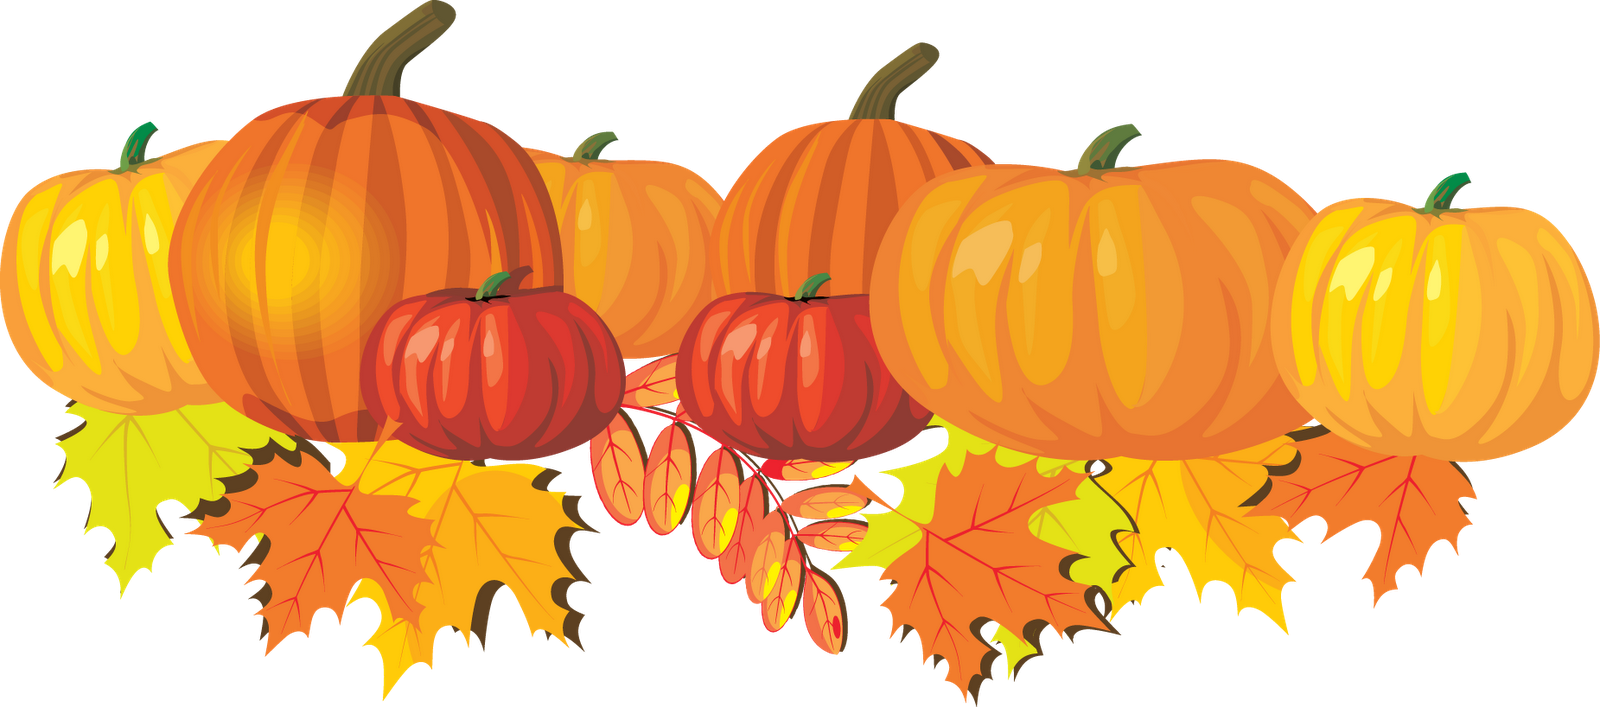 19 Fall Pumpkin Pictures Free Cliparts That You Can Download To You